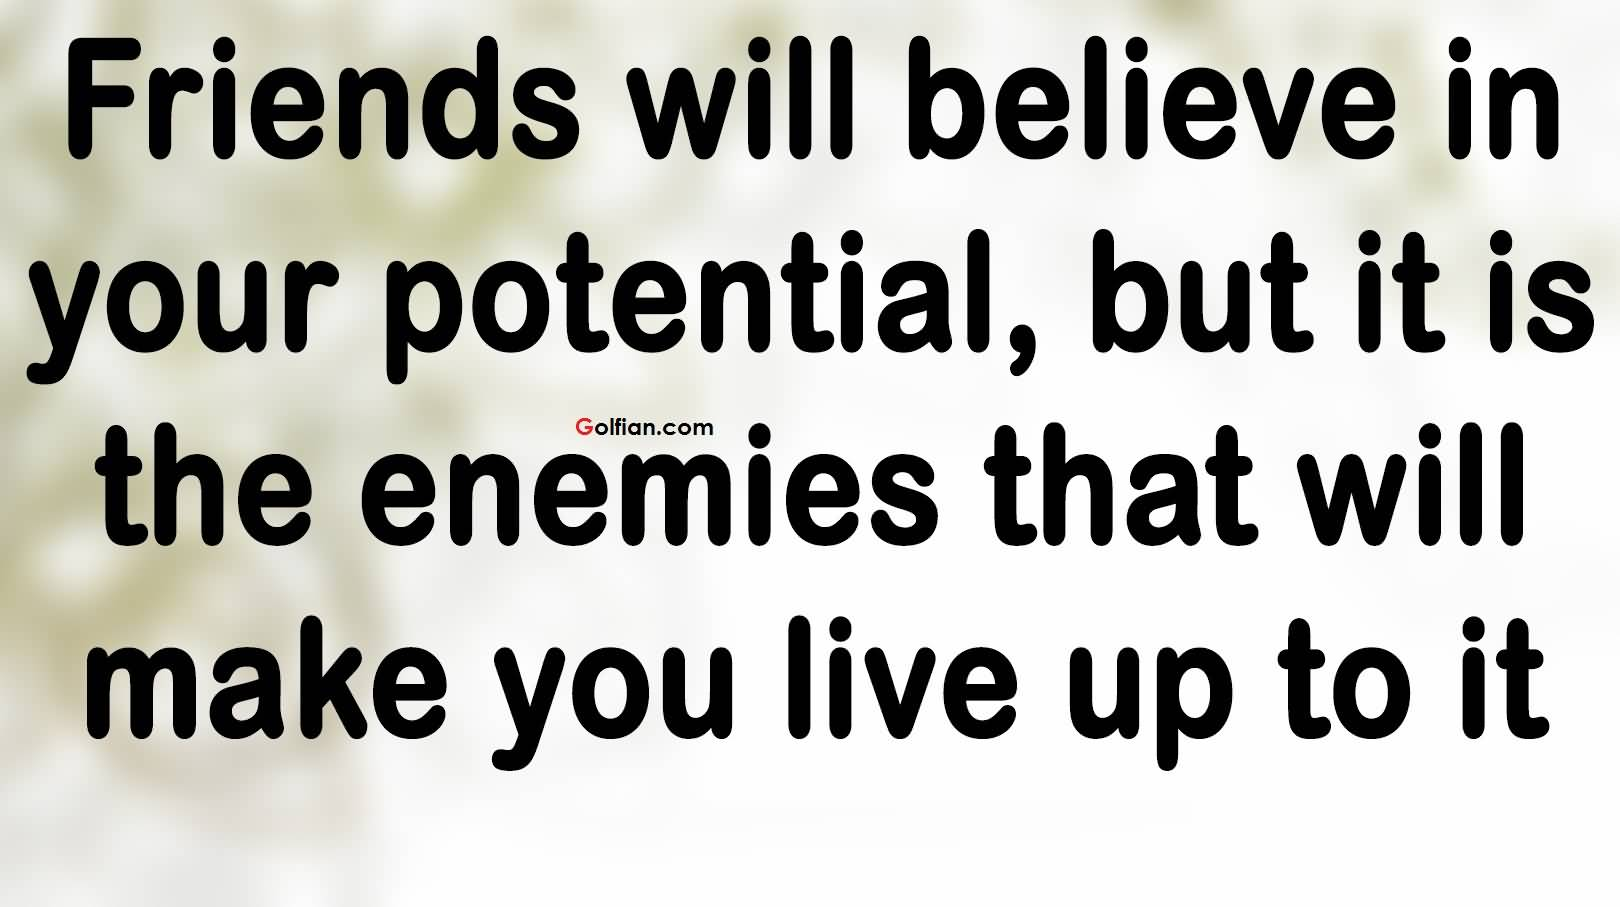 Friends will believe in your potential but it is the enemies